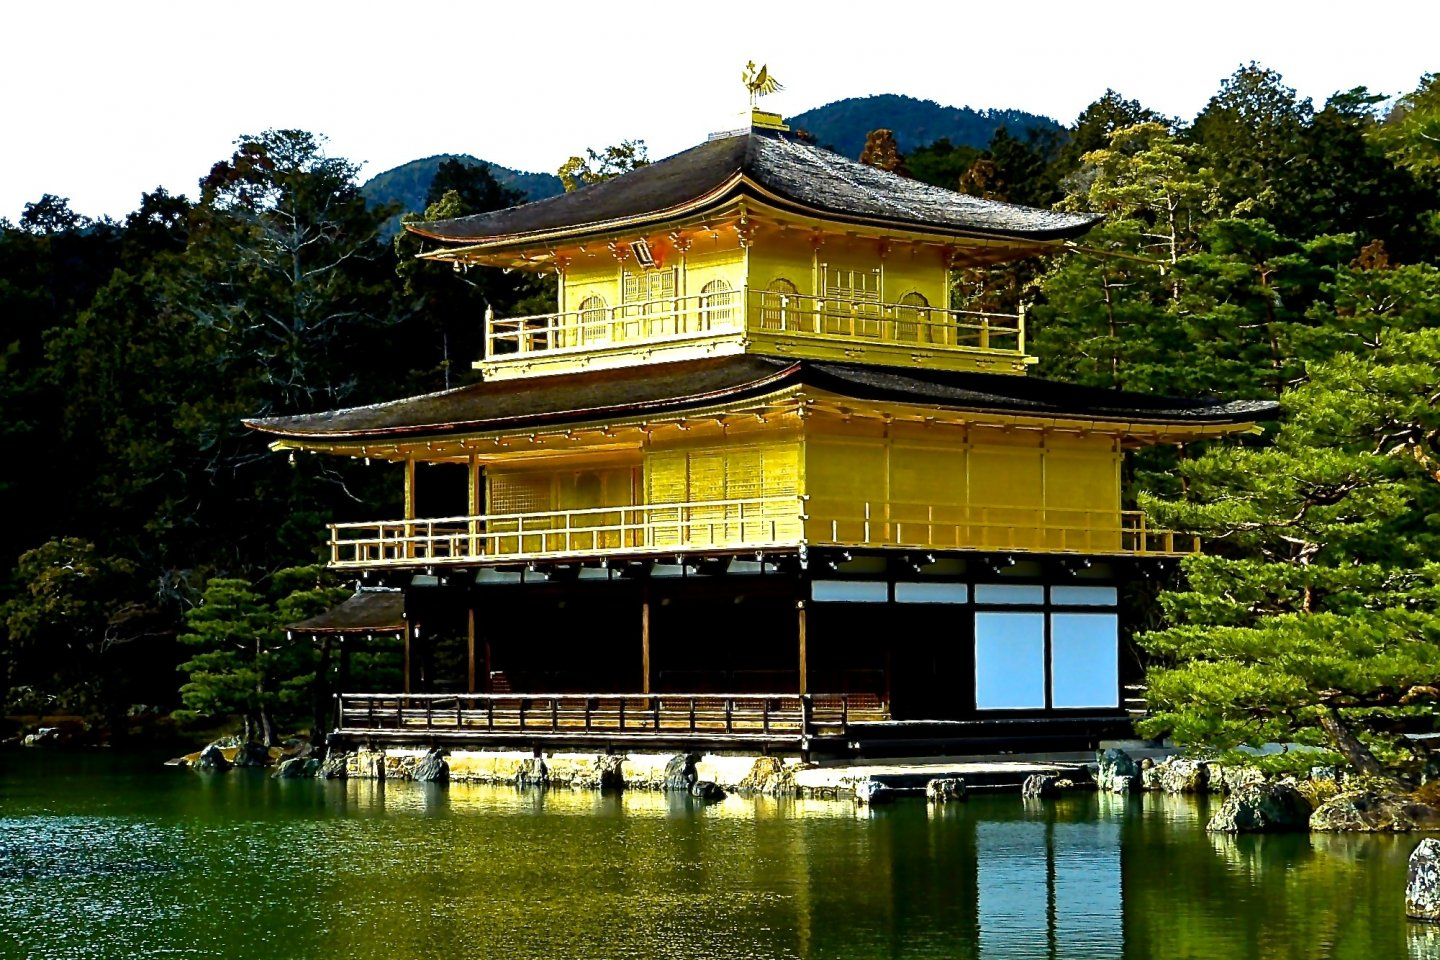 The Golden Pavilion, Kinkaku